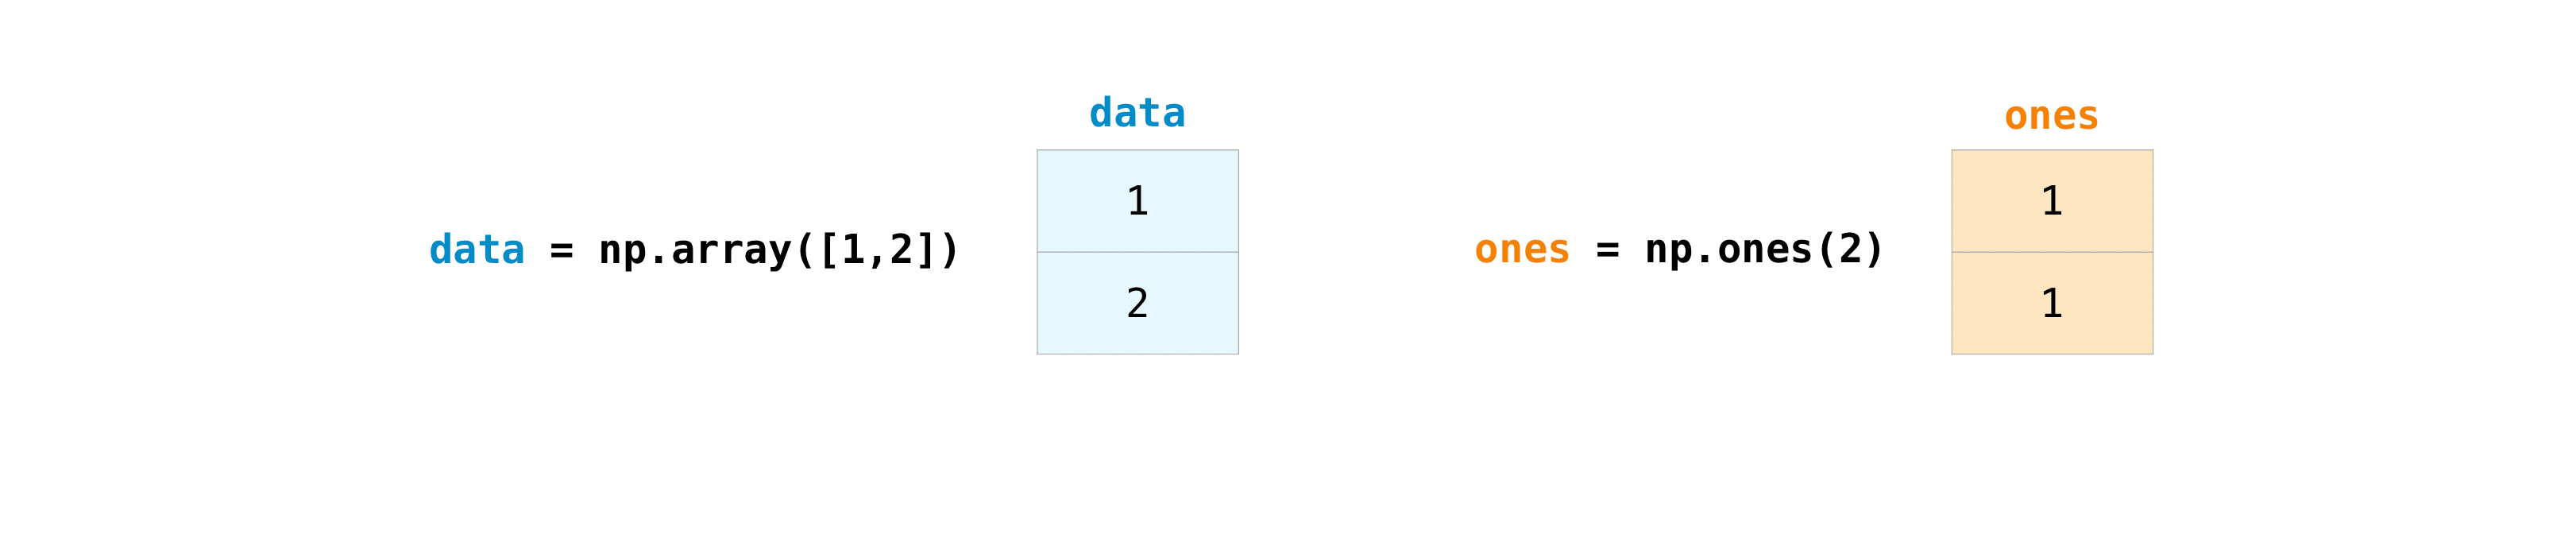 ../_images/np_array_dataones.png